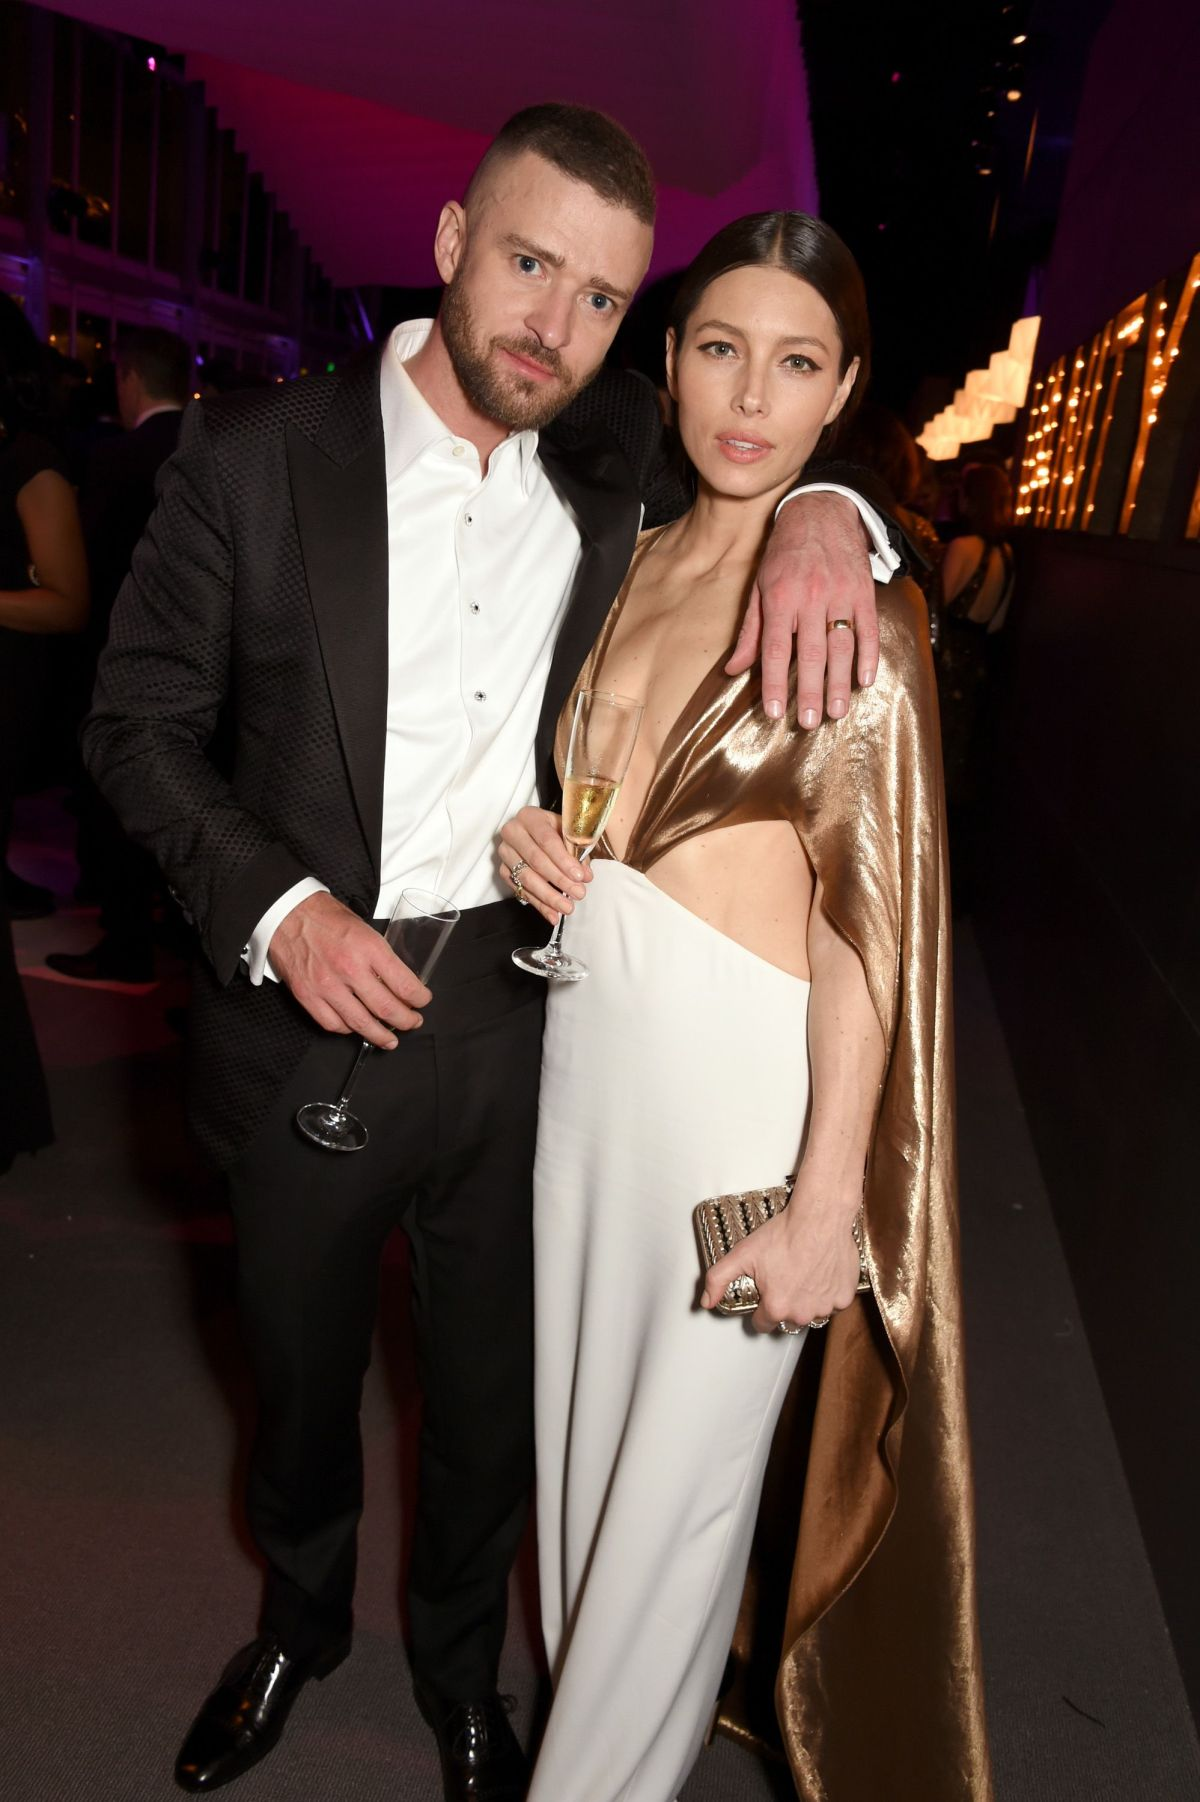 Jessica Biel 'Encouraged' Justin Timberlake to Publicly Apologize to Her  for Alisha Wainwright PDA Pics